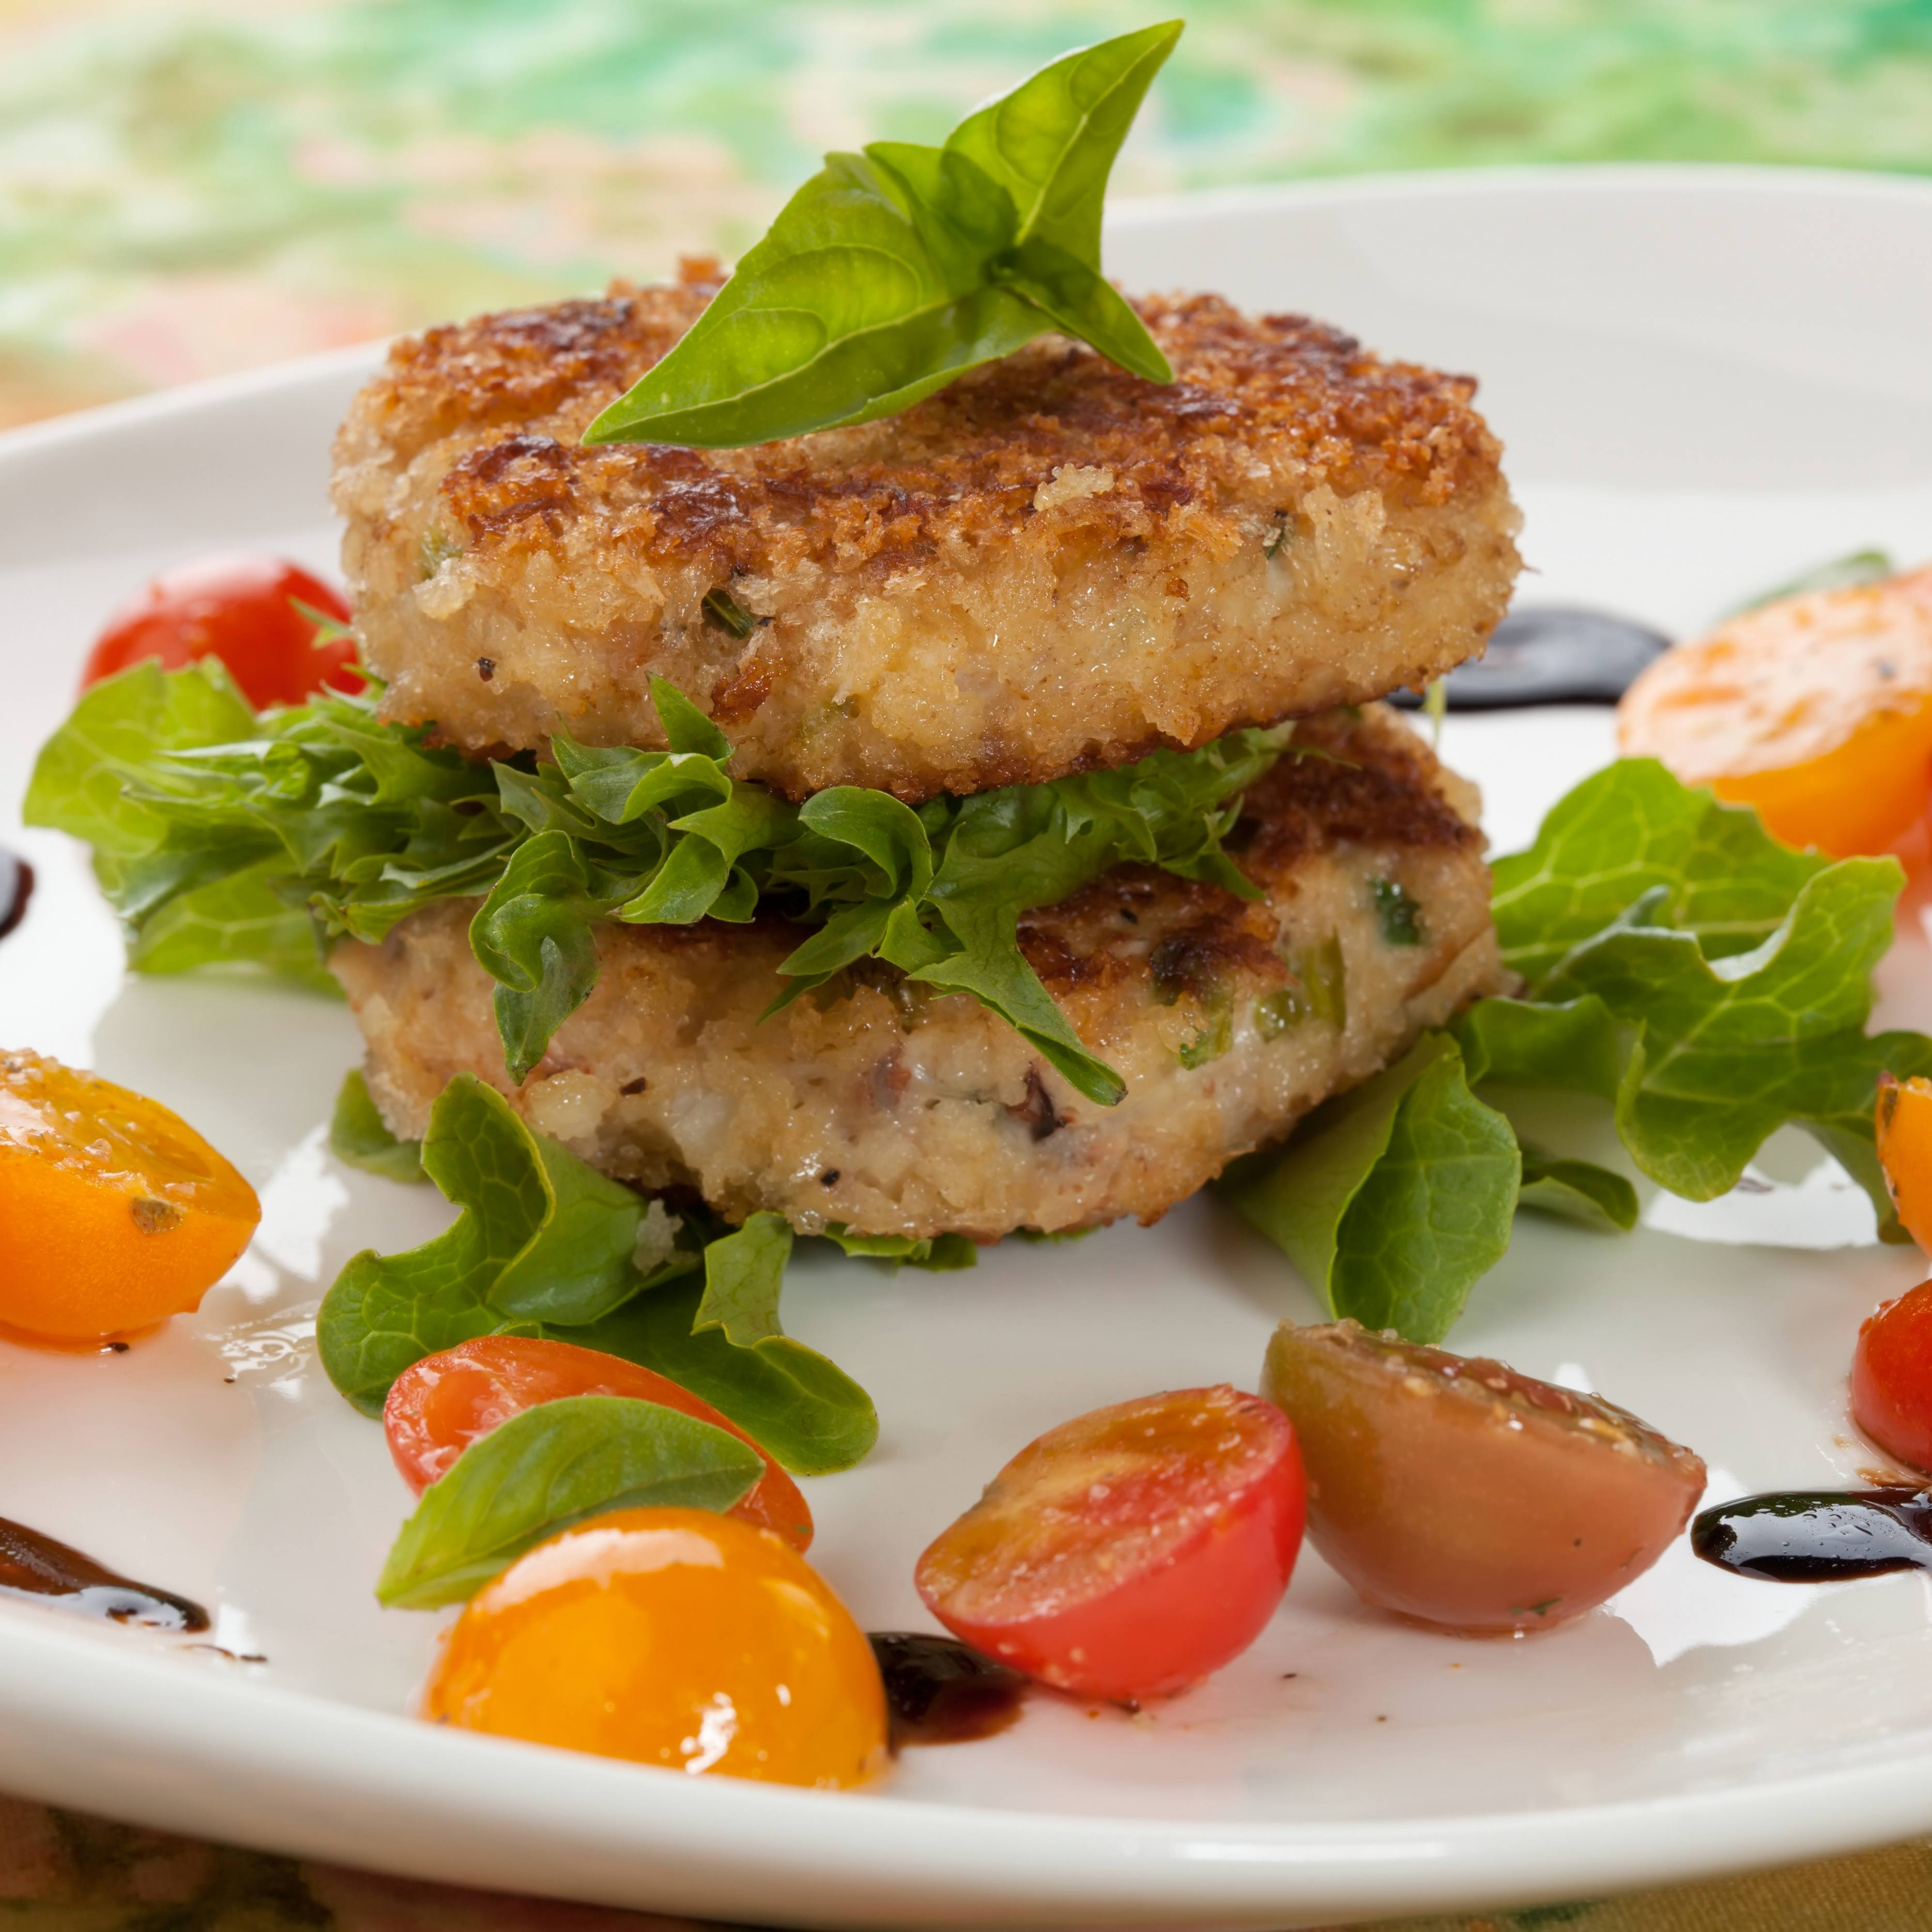 a plate with lettuce, tomatoes and crabcakes